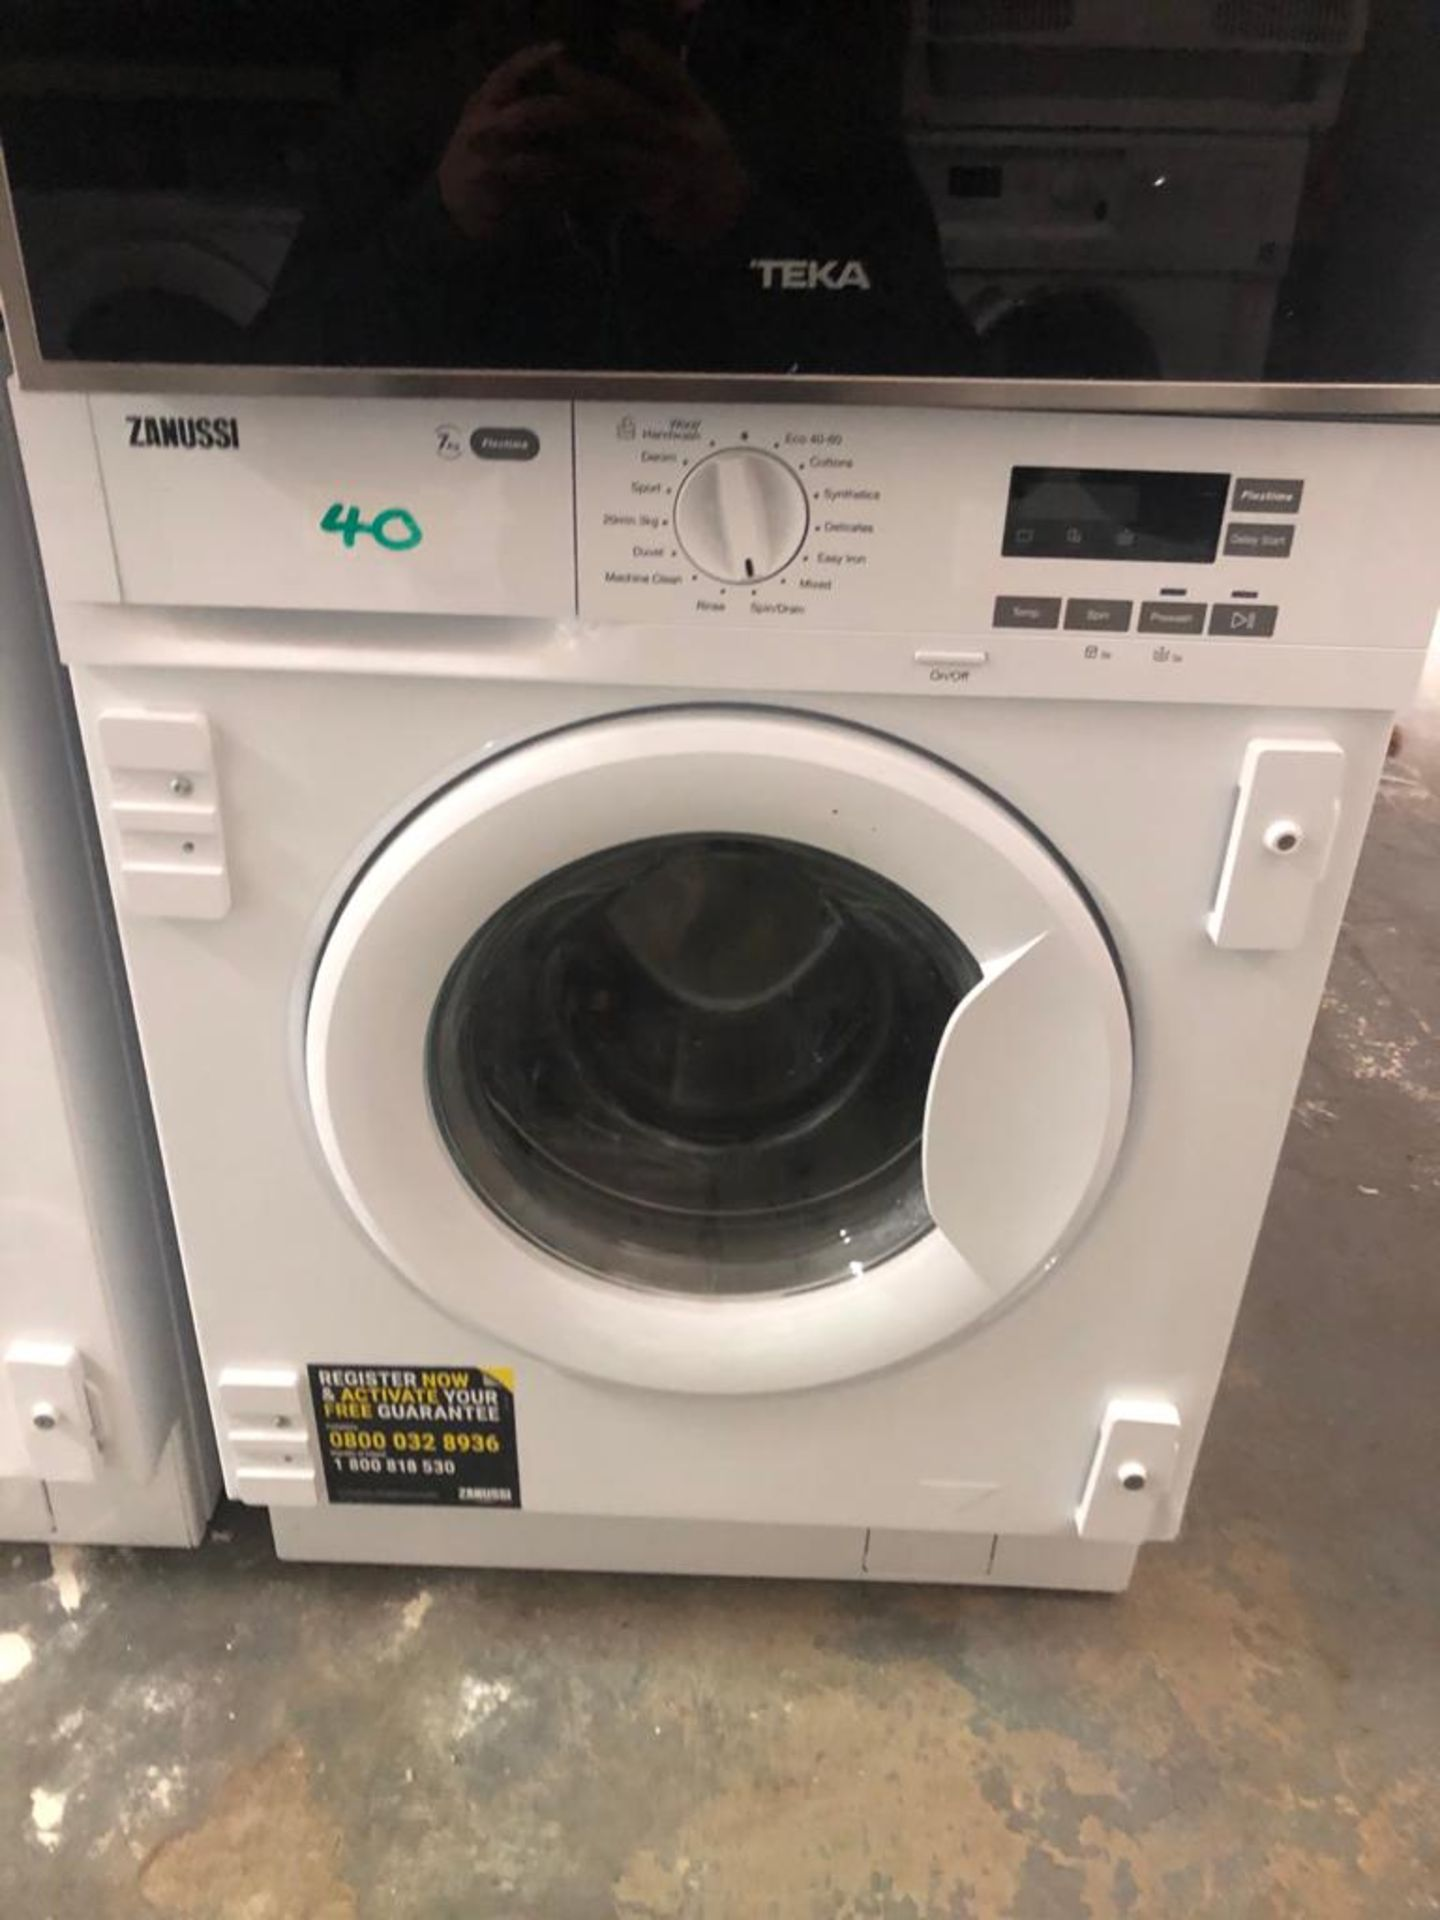 NEW/GRADED AND UNPACKAGED Zanussi Z712W43BI Integrated Washing Machine, 7kg Load (Scuffs down the